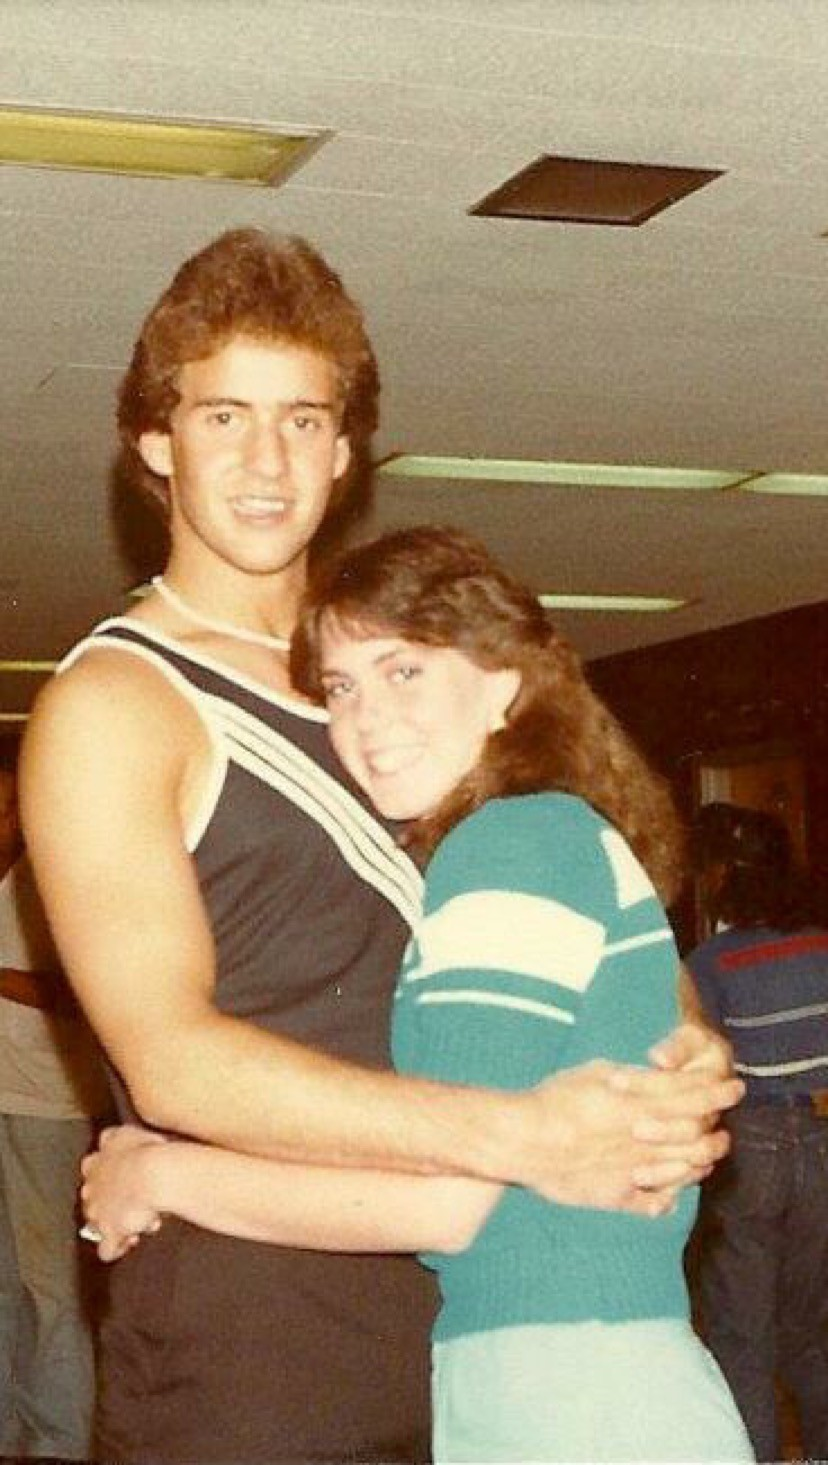 Keith met Elizabeth King when they were both 16 and students at Freeport High School. They were married for 32 years.